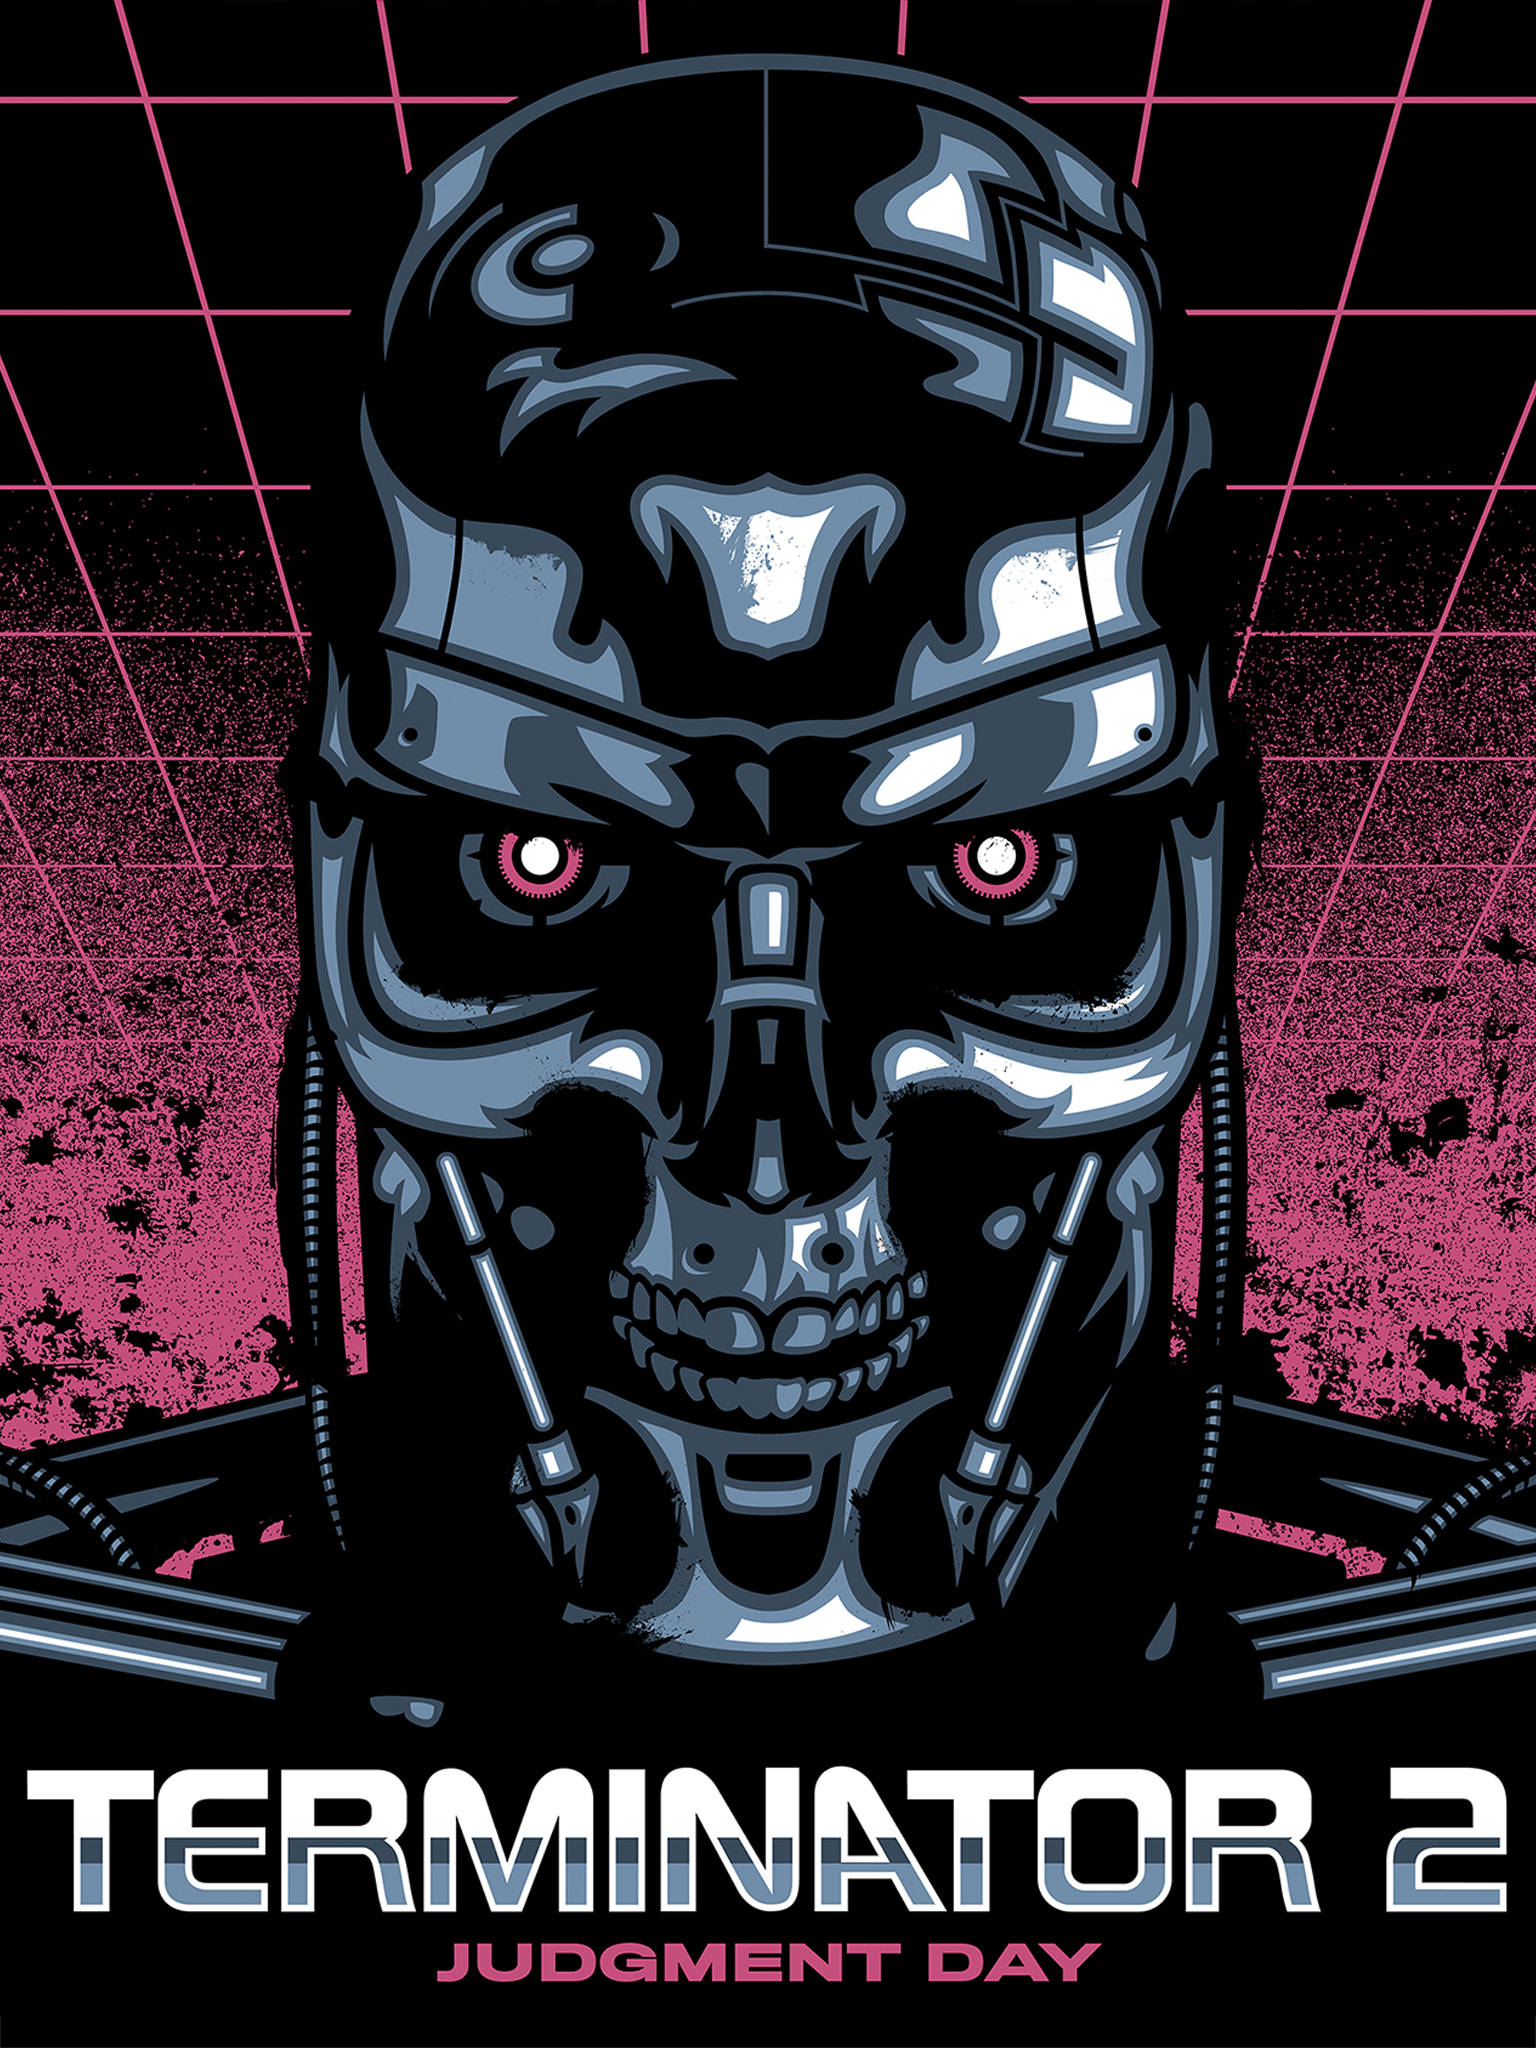 Wallpaper of the Week: Terminator 2 by James White